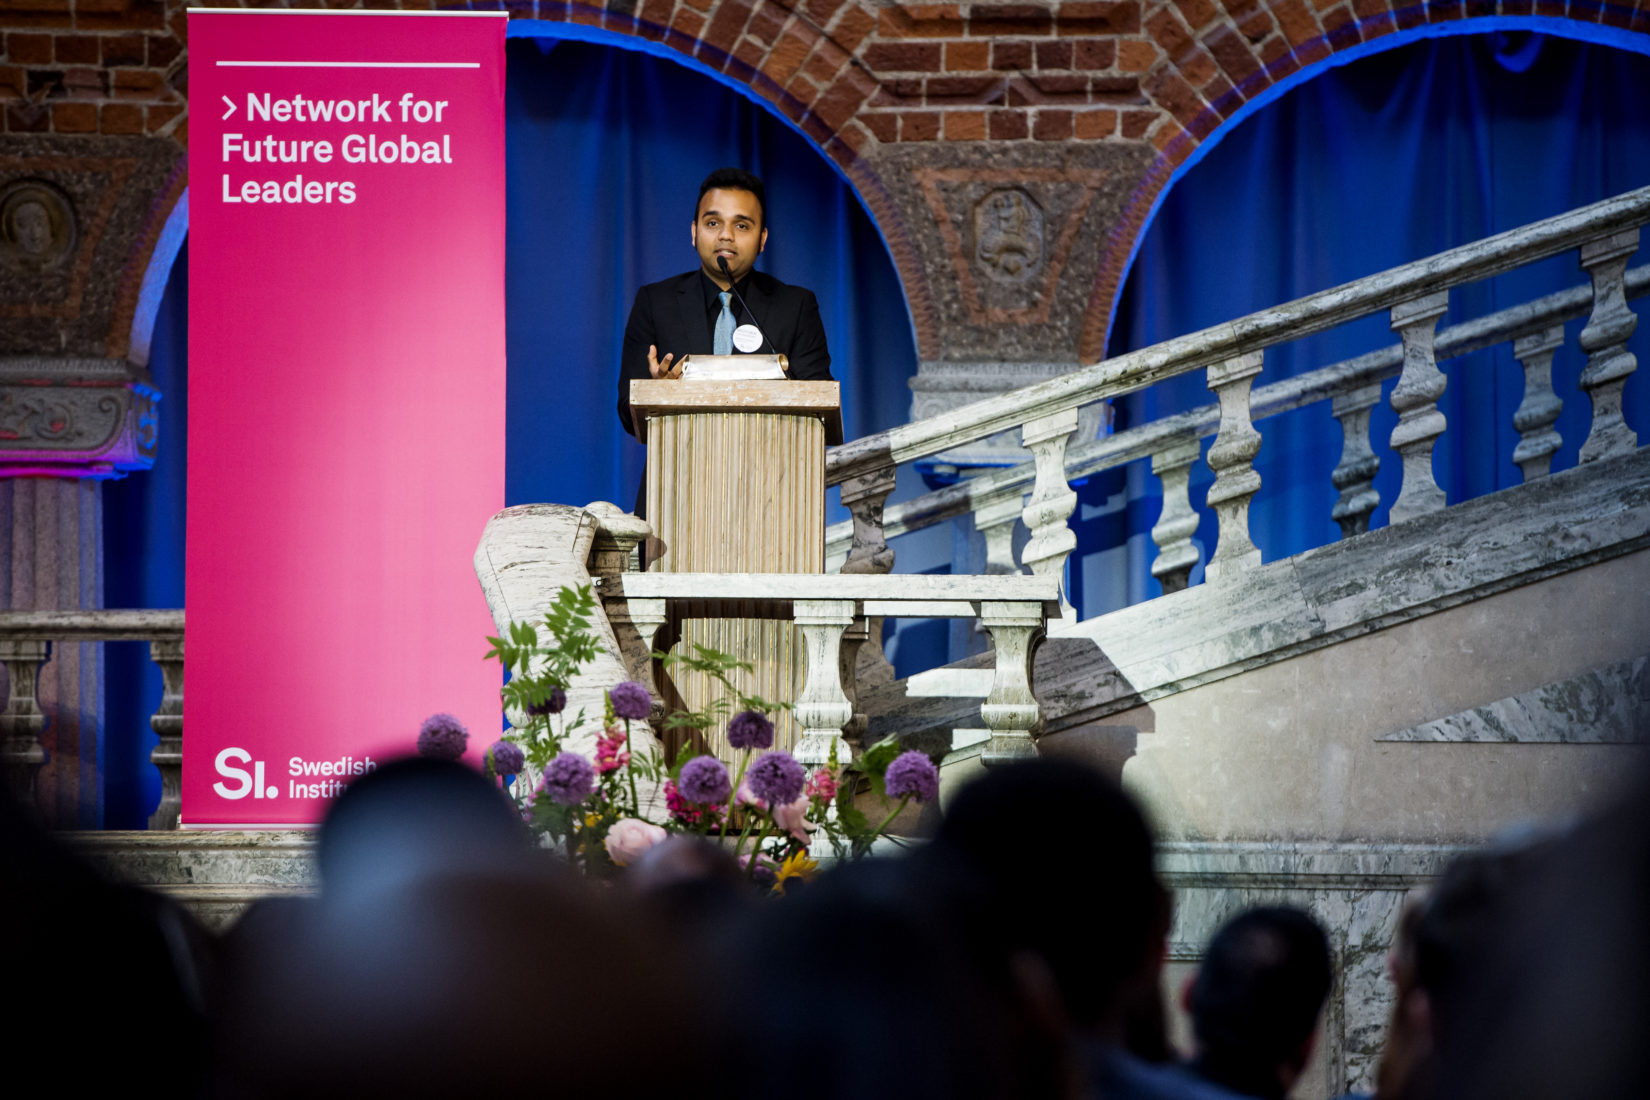 Previous SI scholarship holder Moyukh Chowdhury is giving speech at the SI Diploma Ceremony 2018 at the Stockholm City Hall.